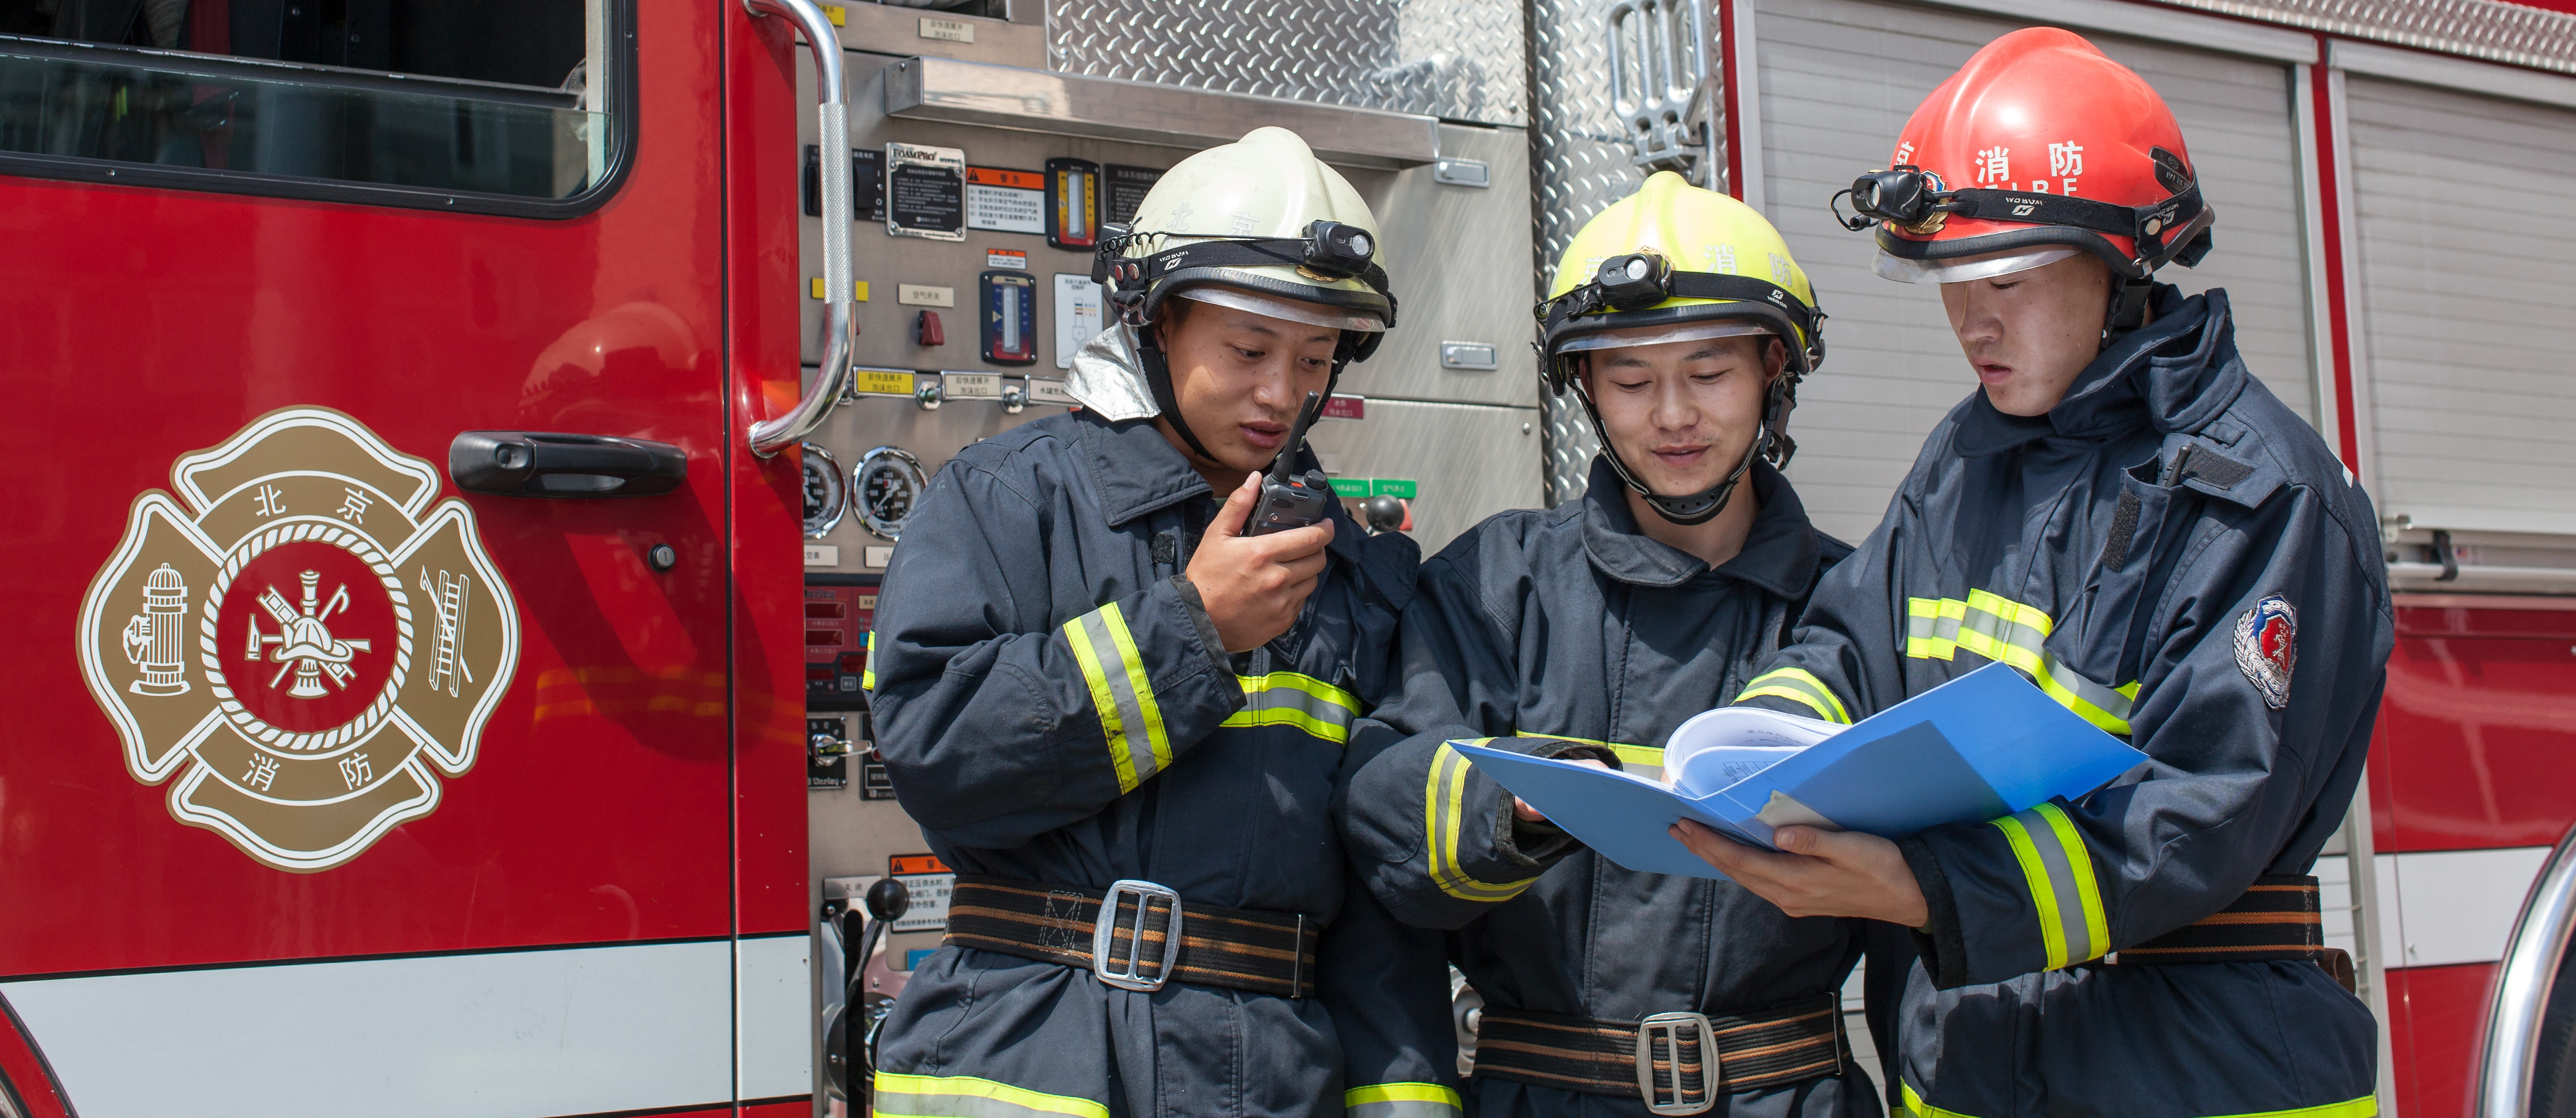 TETRA communications in use in the Beijing fire department